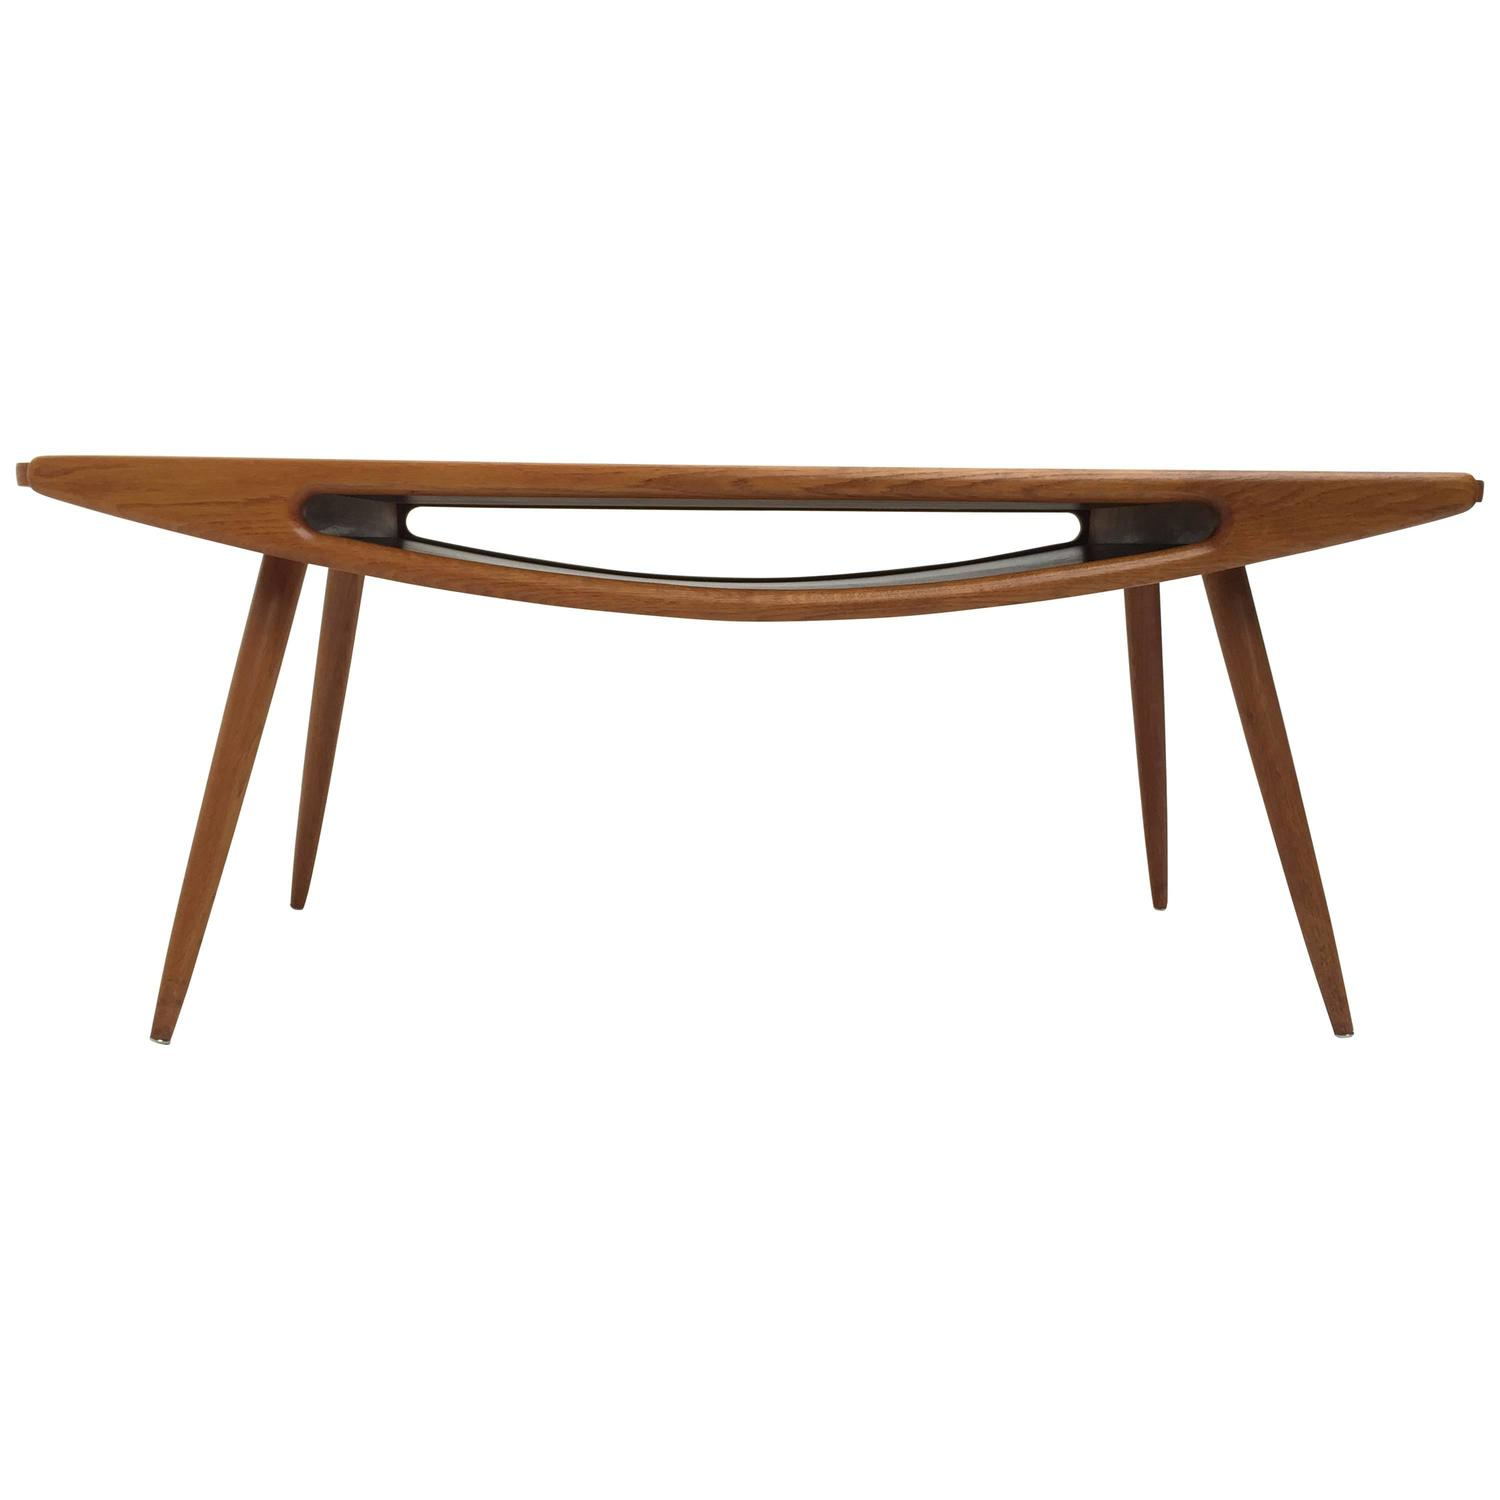 Danish Smiley Teak and Oak Coffee Table in the Style of Johannes